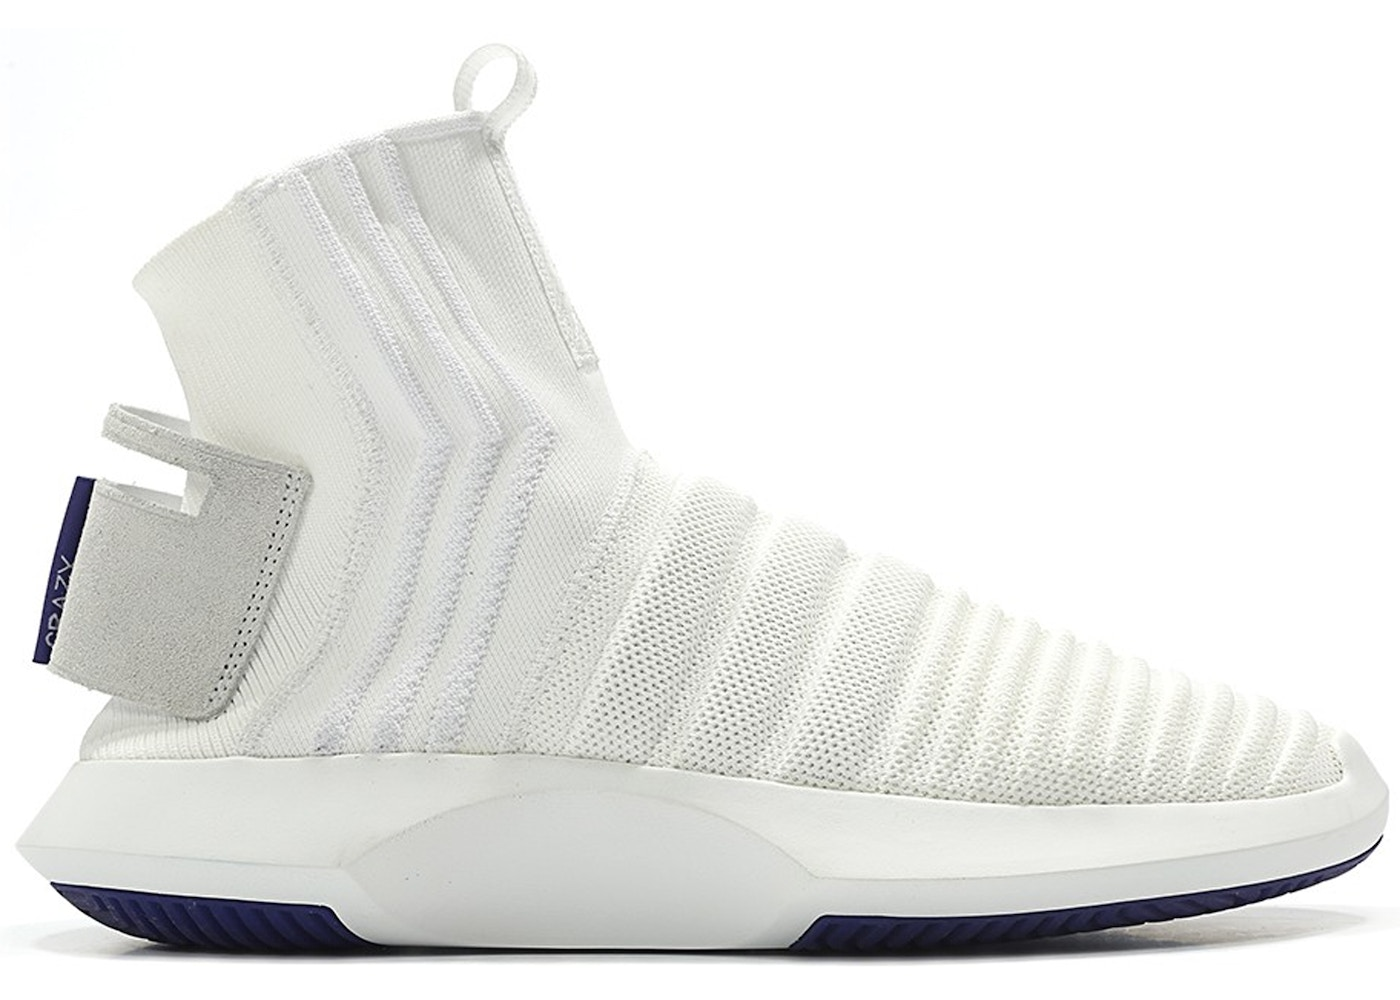 f898130562d7 ... CQ1012 Mens Primeknit Textile quite nice 21cca 00c6e  adidas Crazy 1  Adv Sock Footwear White Real Purple for whole family 98873 75272 ...